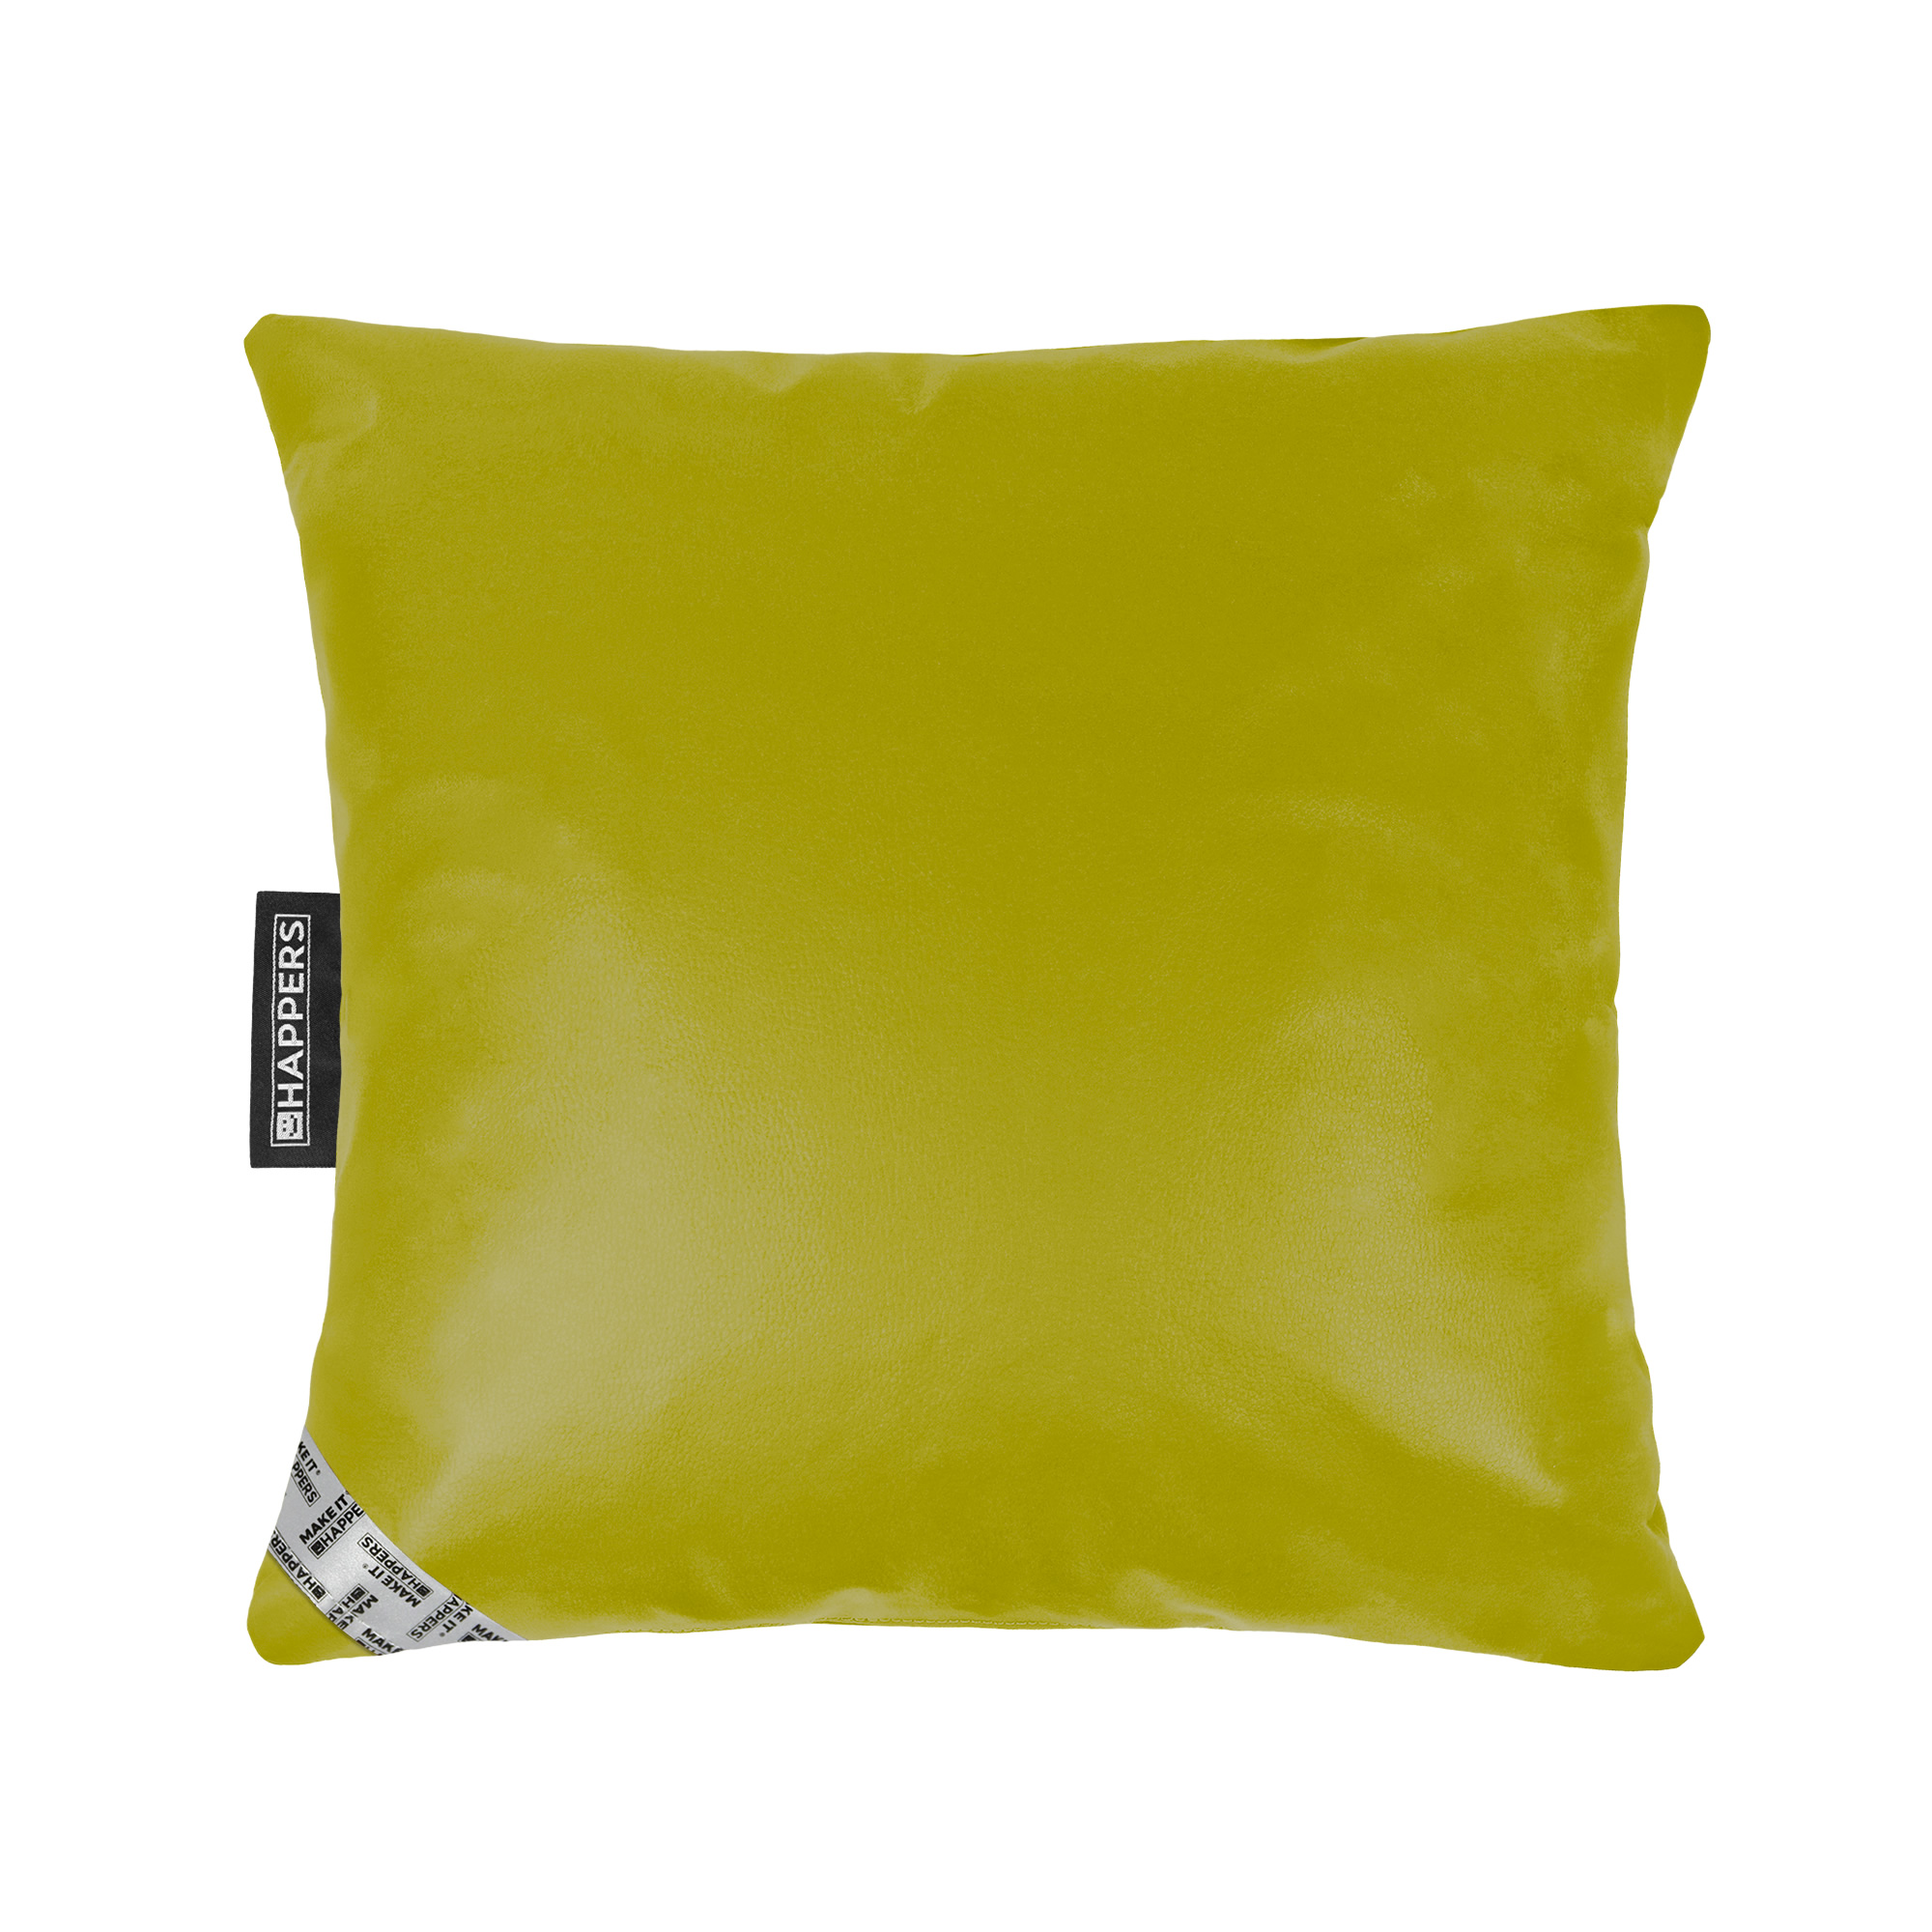 Cojín 45x45 Polipiel Indoor Pistacho Happers | Happers.es